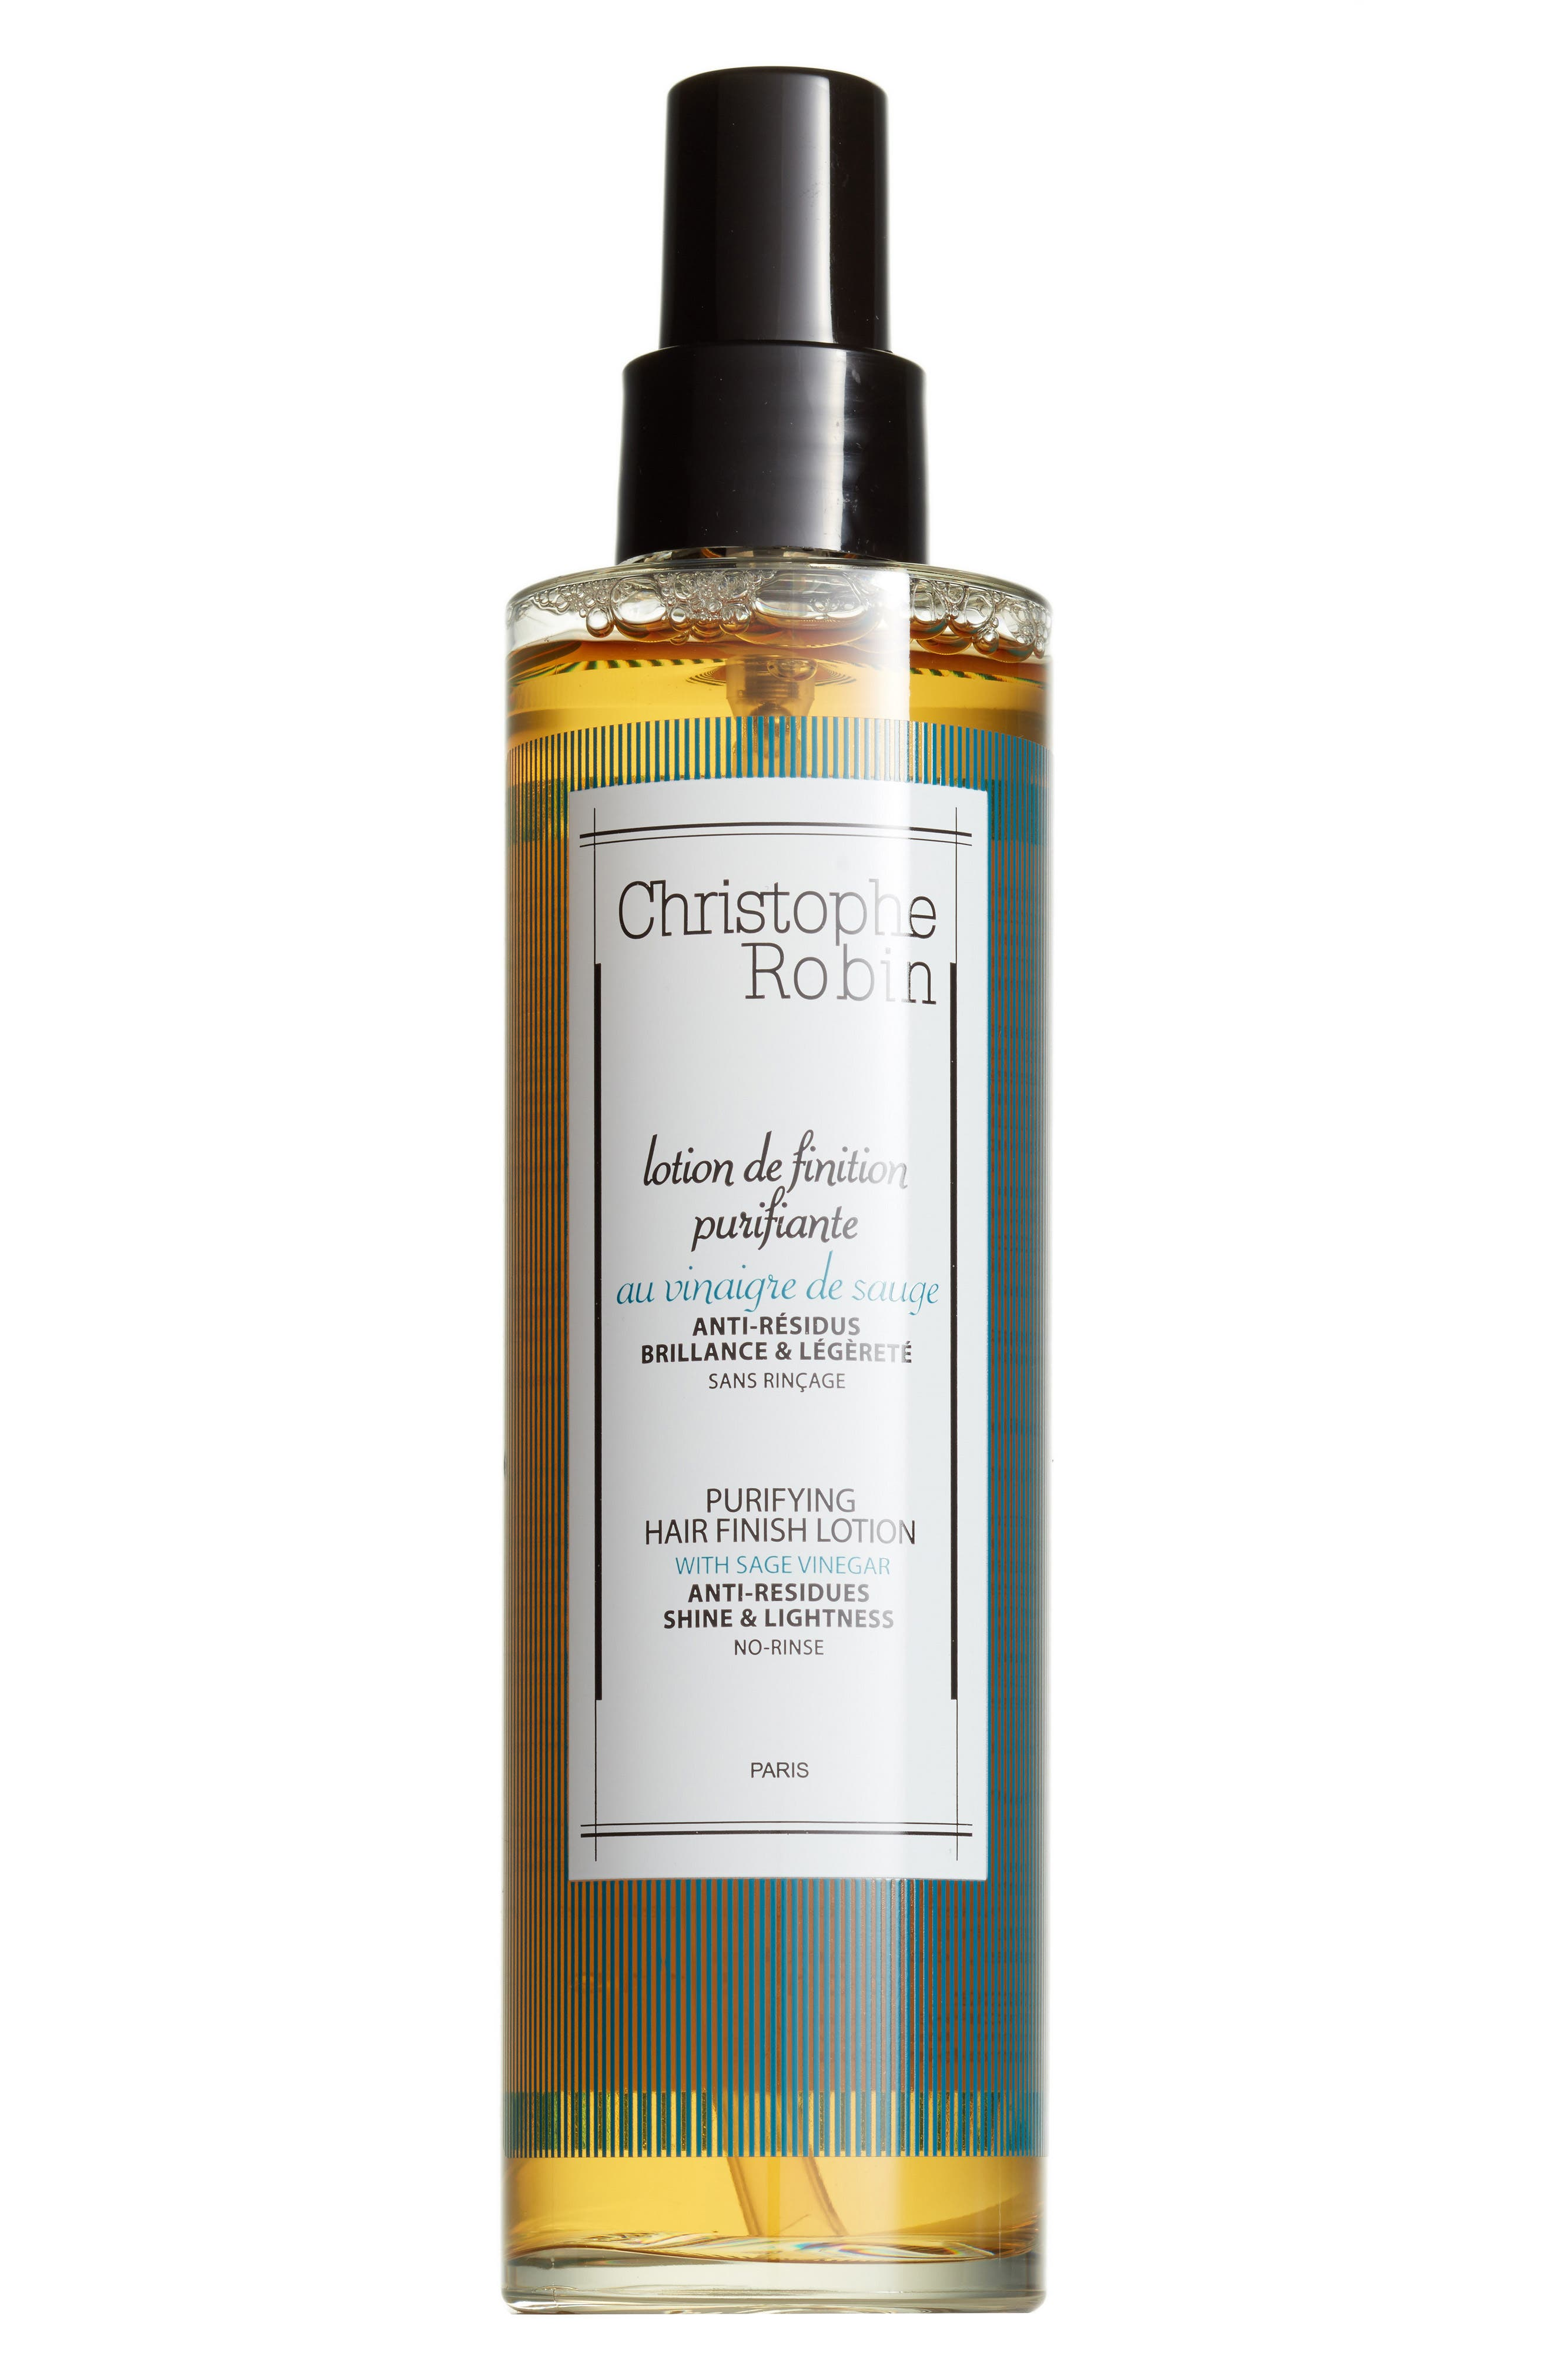 CHRISTOPHE ROBIN,                             SPACE.NK.apothecary Christophe Robin Purifying Hair Finish Lotion with Sage Vinegar,                             Main thumbnail 1, color,                             NO COLOR